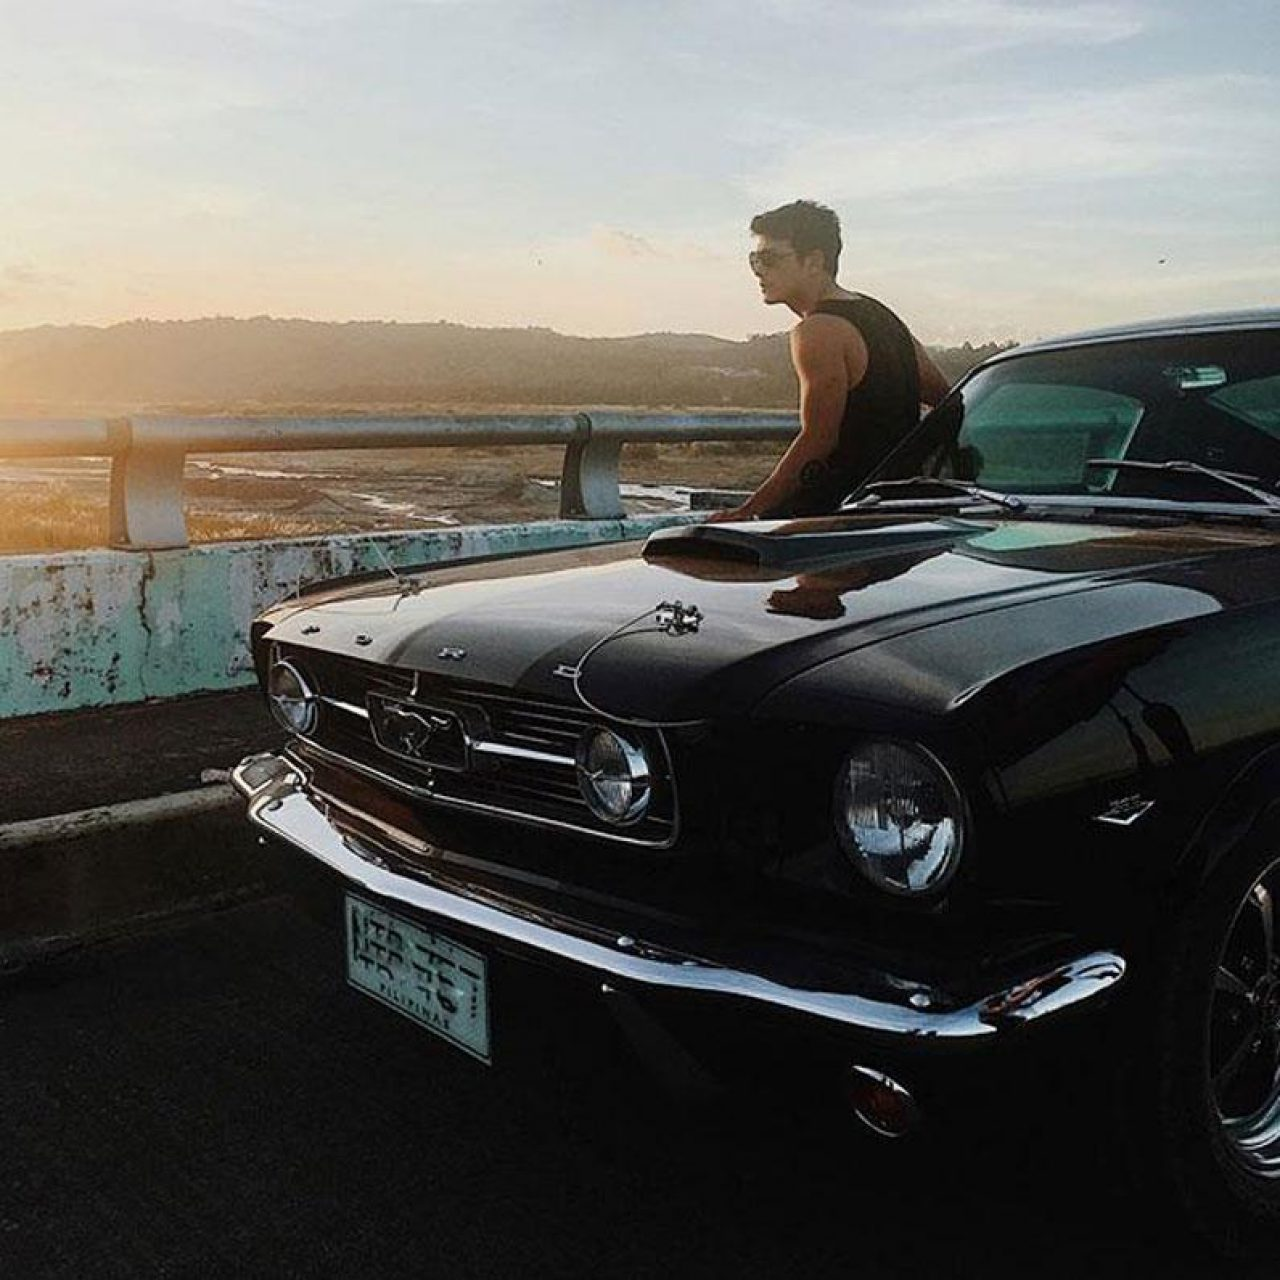 Jericho Rosales Ford Mustang